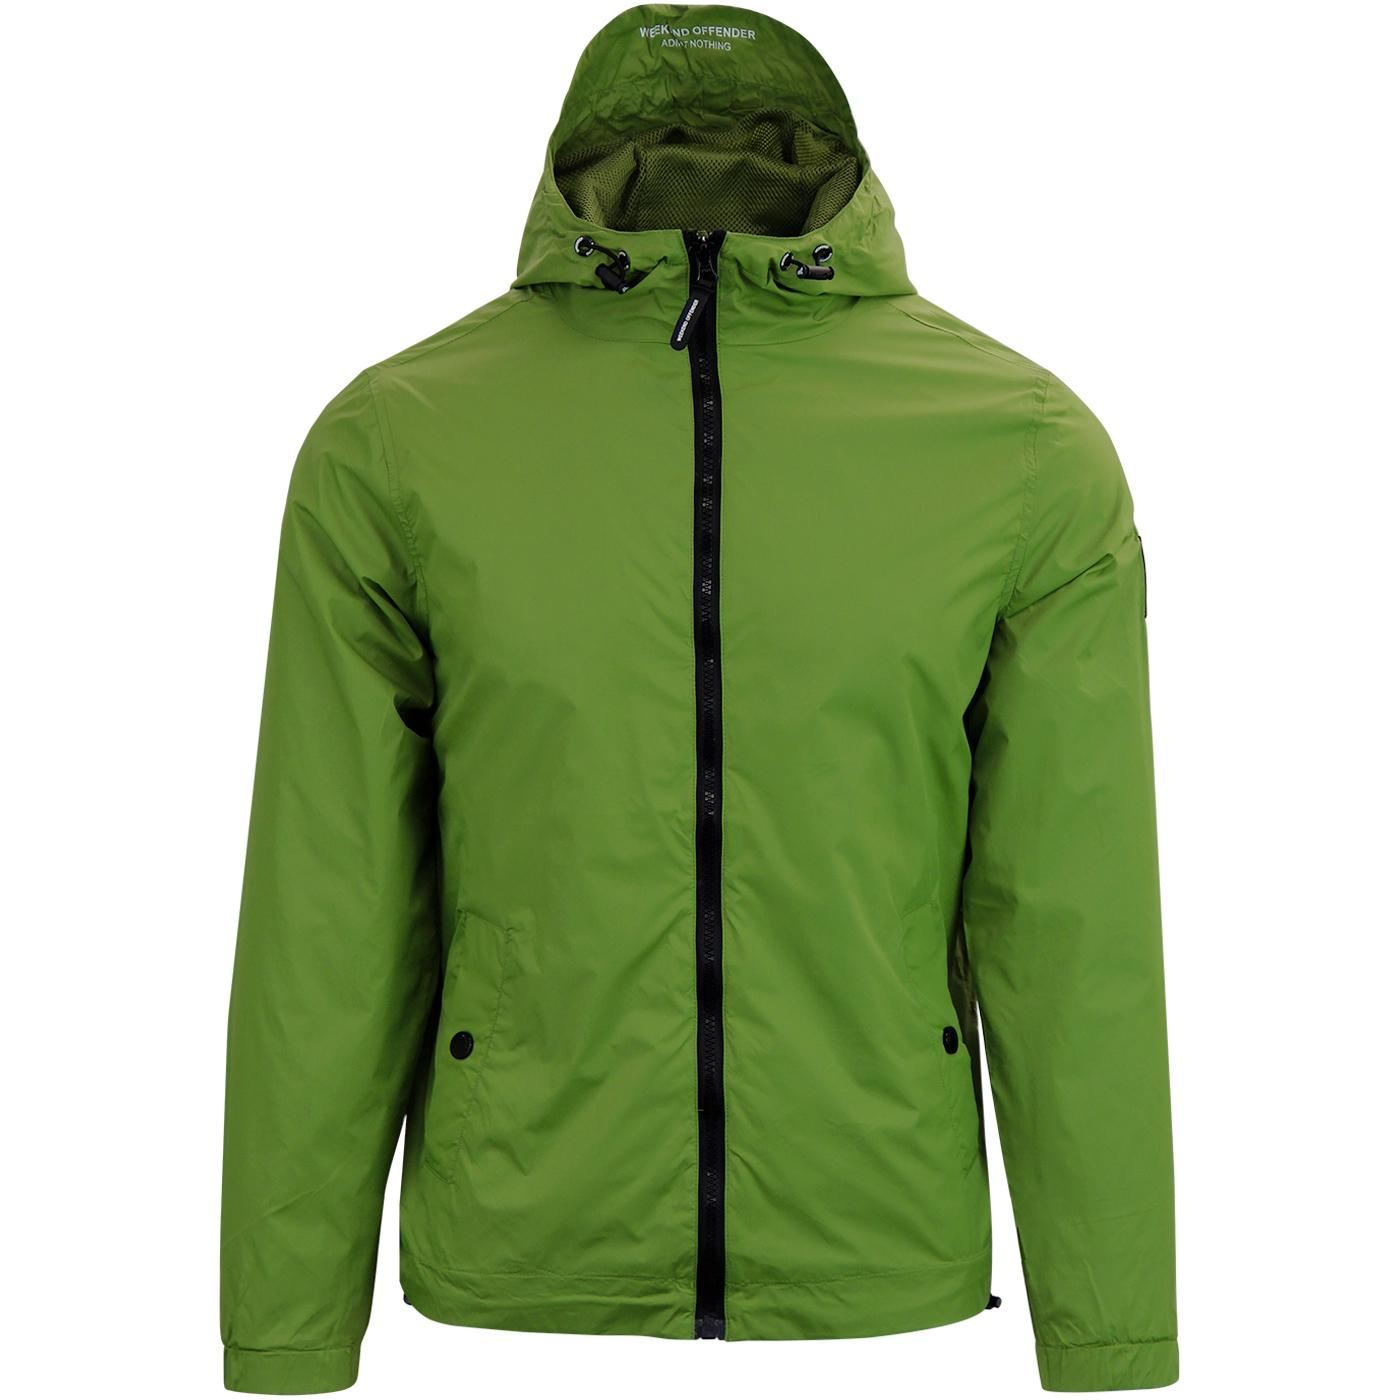 Fabio WEEKEND OFFENDER Retro Terrace Jacket (Leaf)